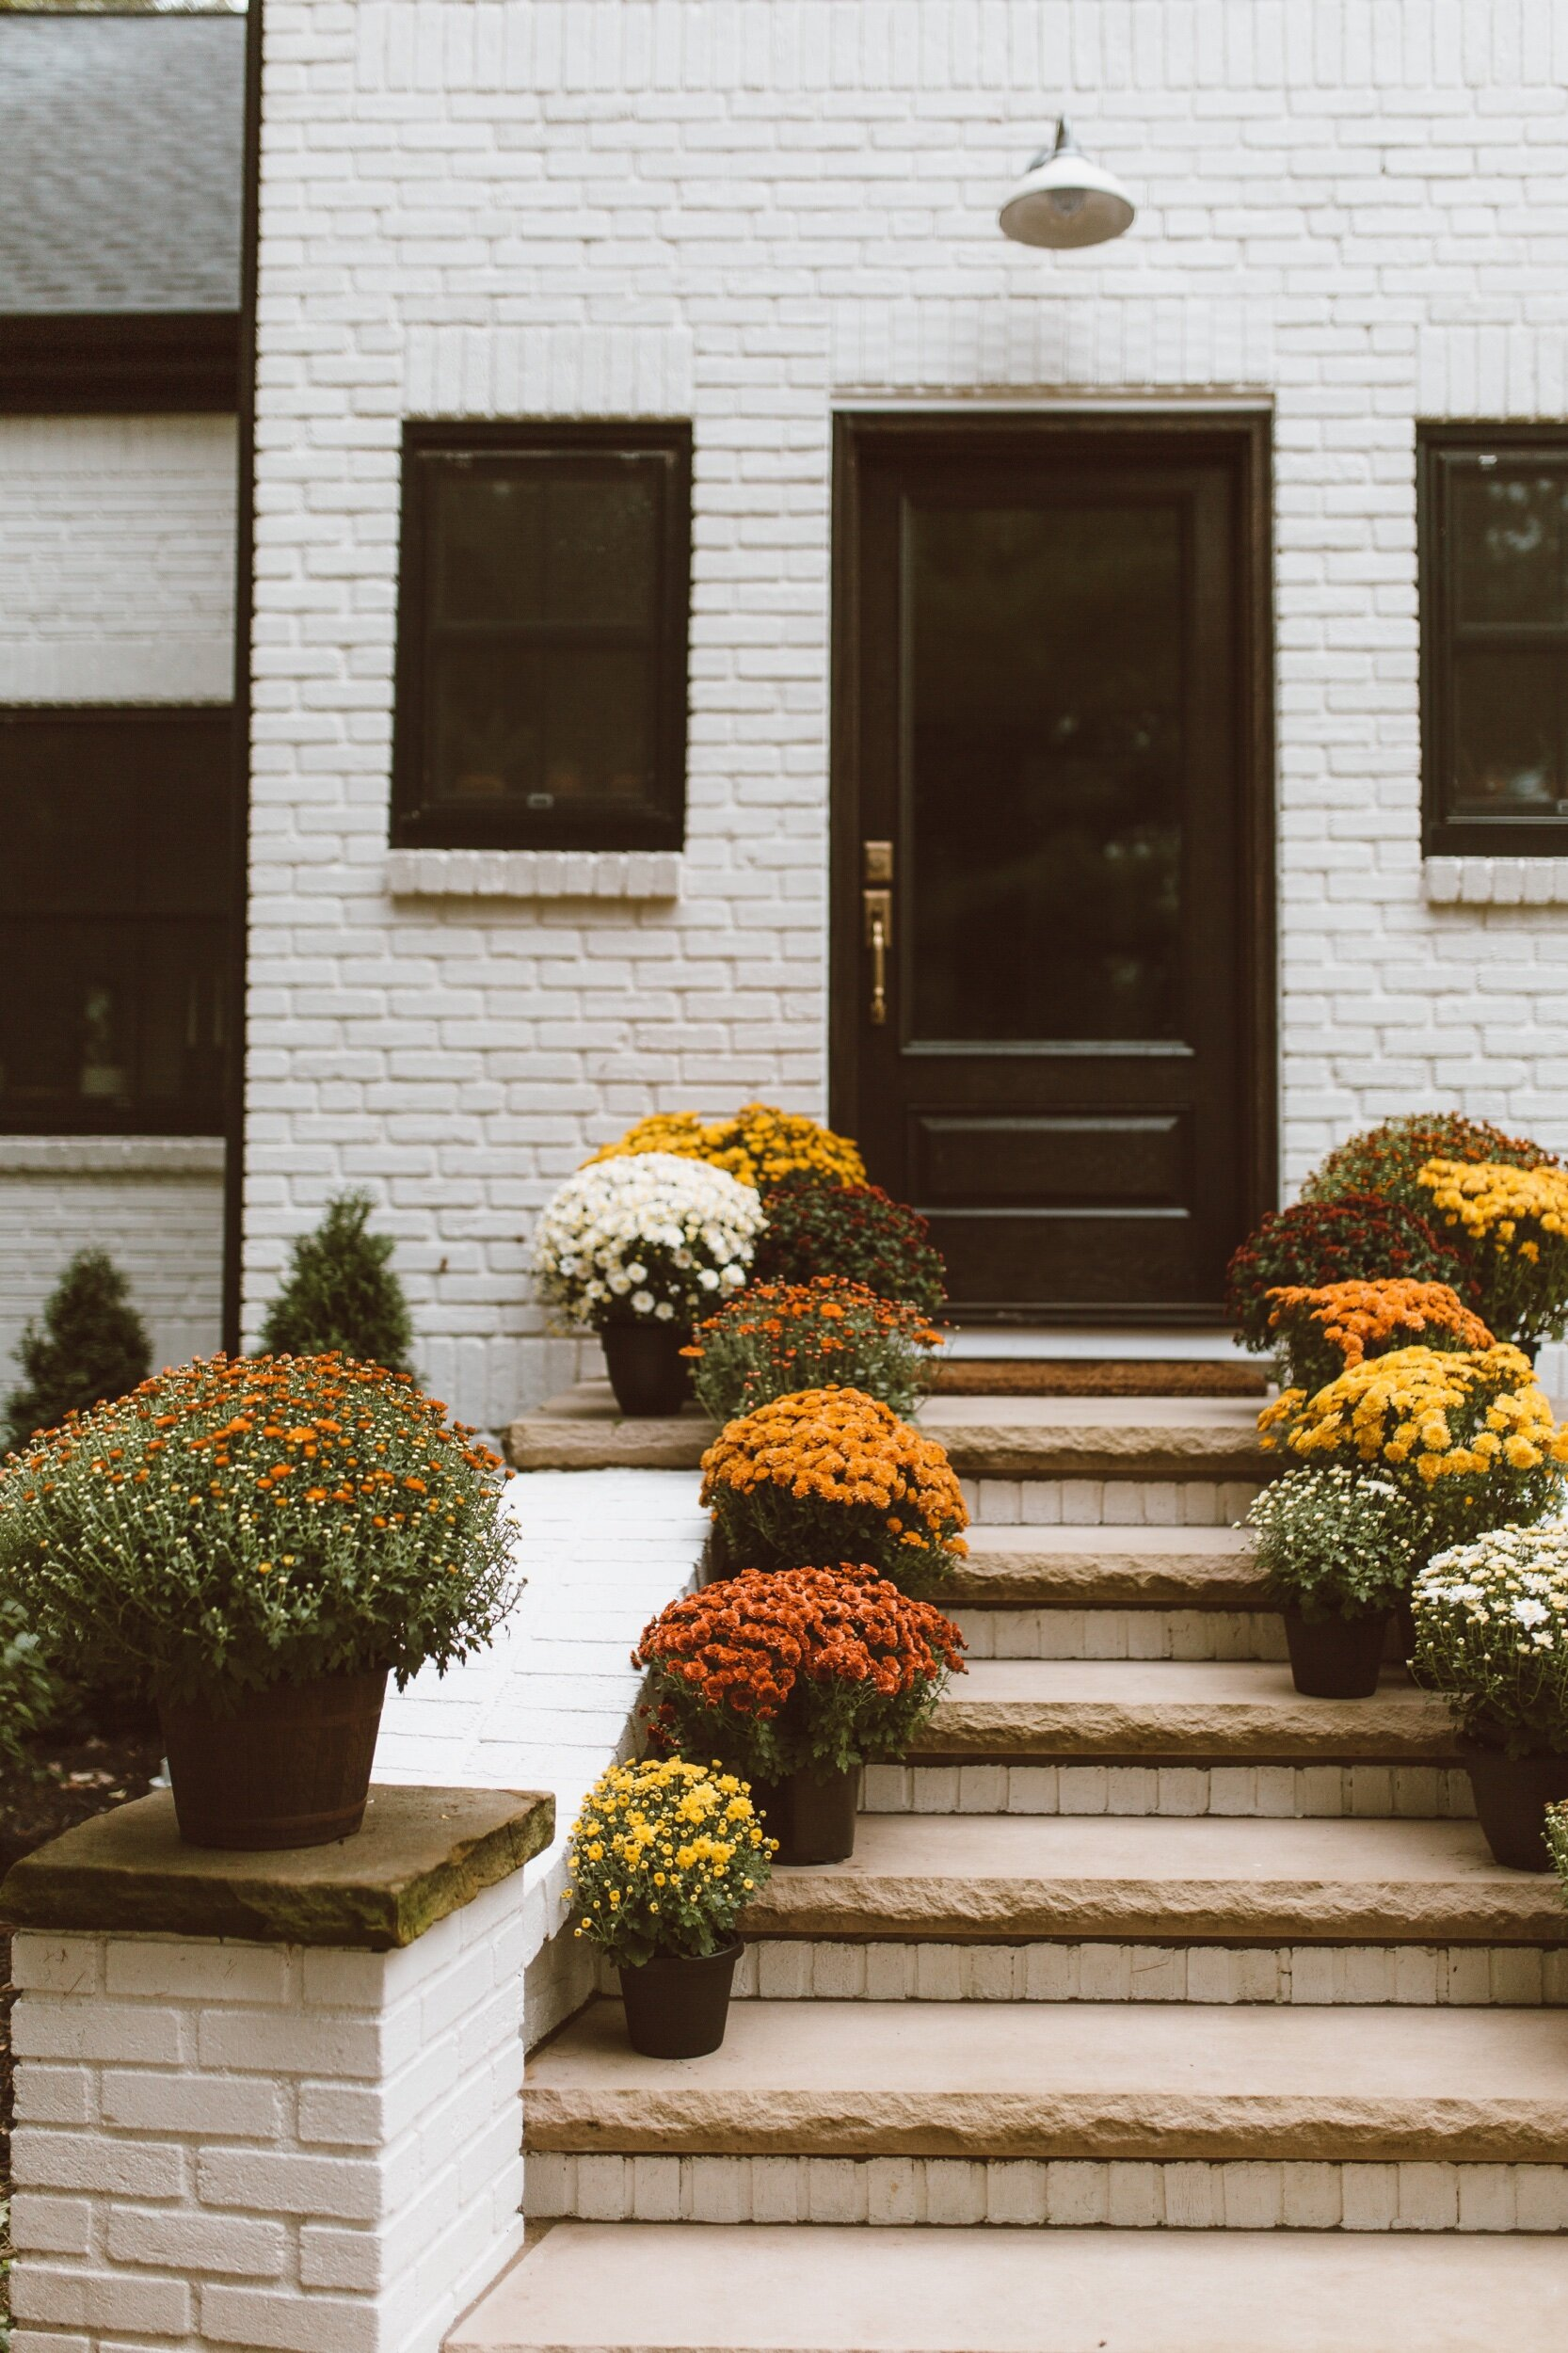 forthehome-how-to-care-for-fall-mums-04.jpeg